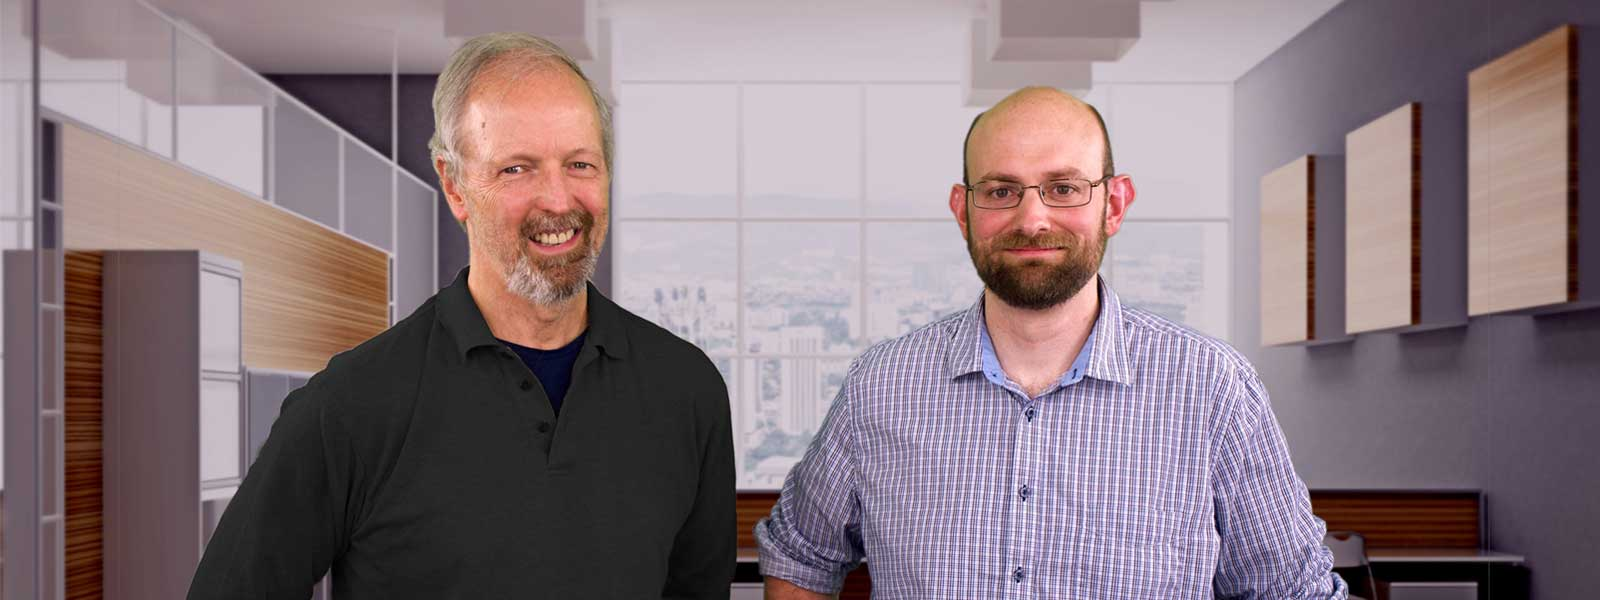 Eric Enge and Brian Weiss discuss SEO in Here's Why Video - educational video series on Digital Marketing